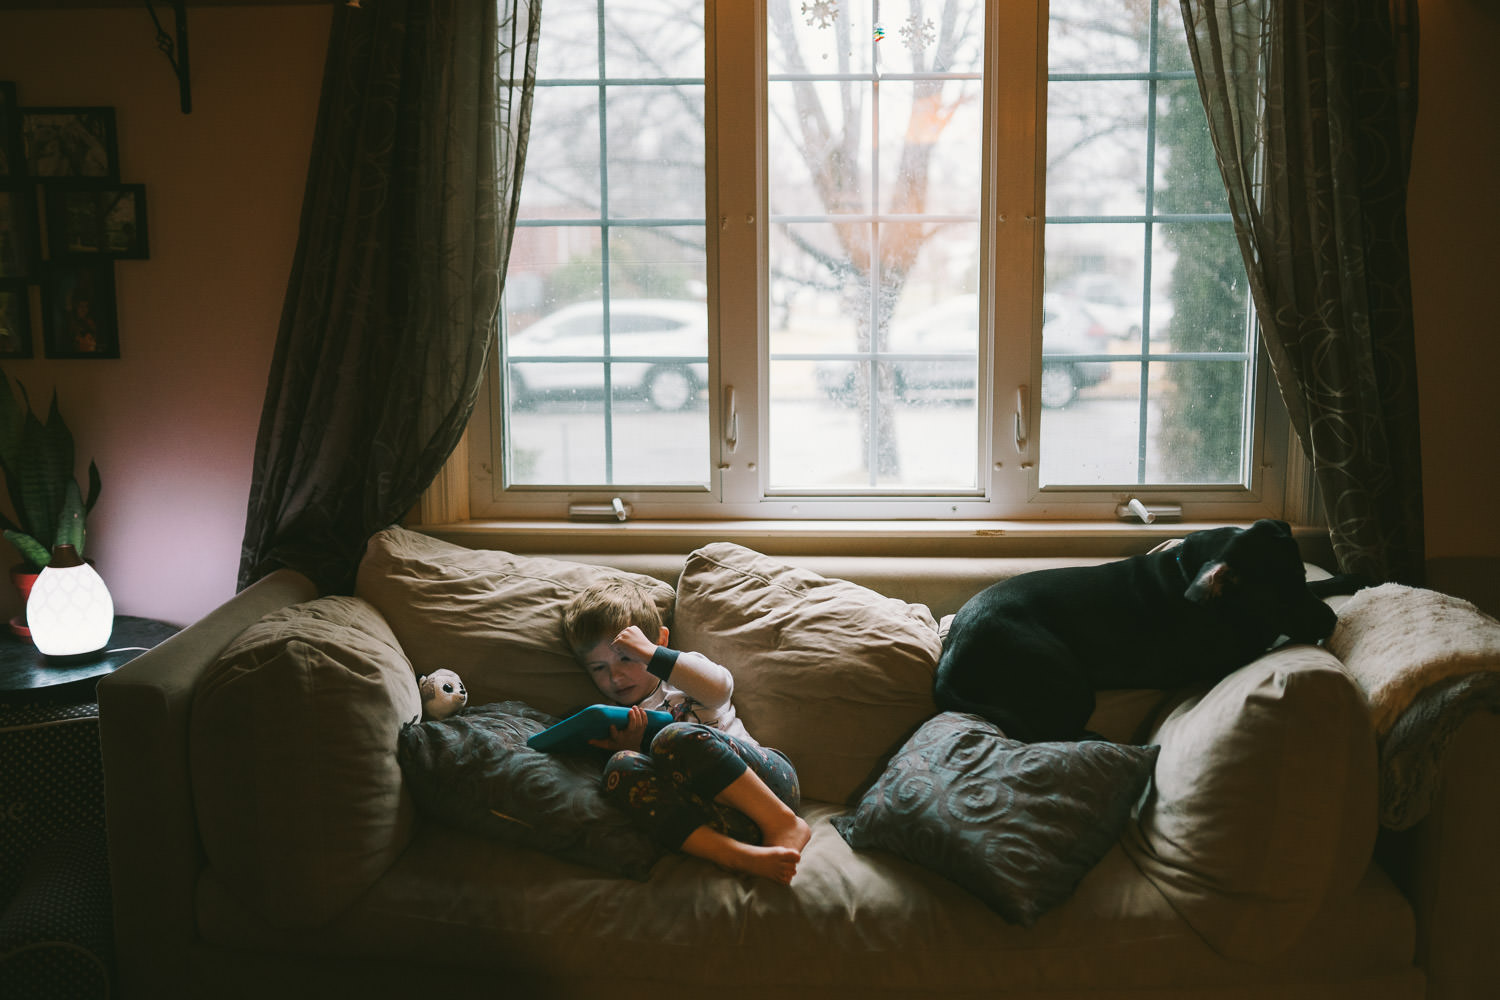 A boy and a puppy curled up on a couch.